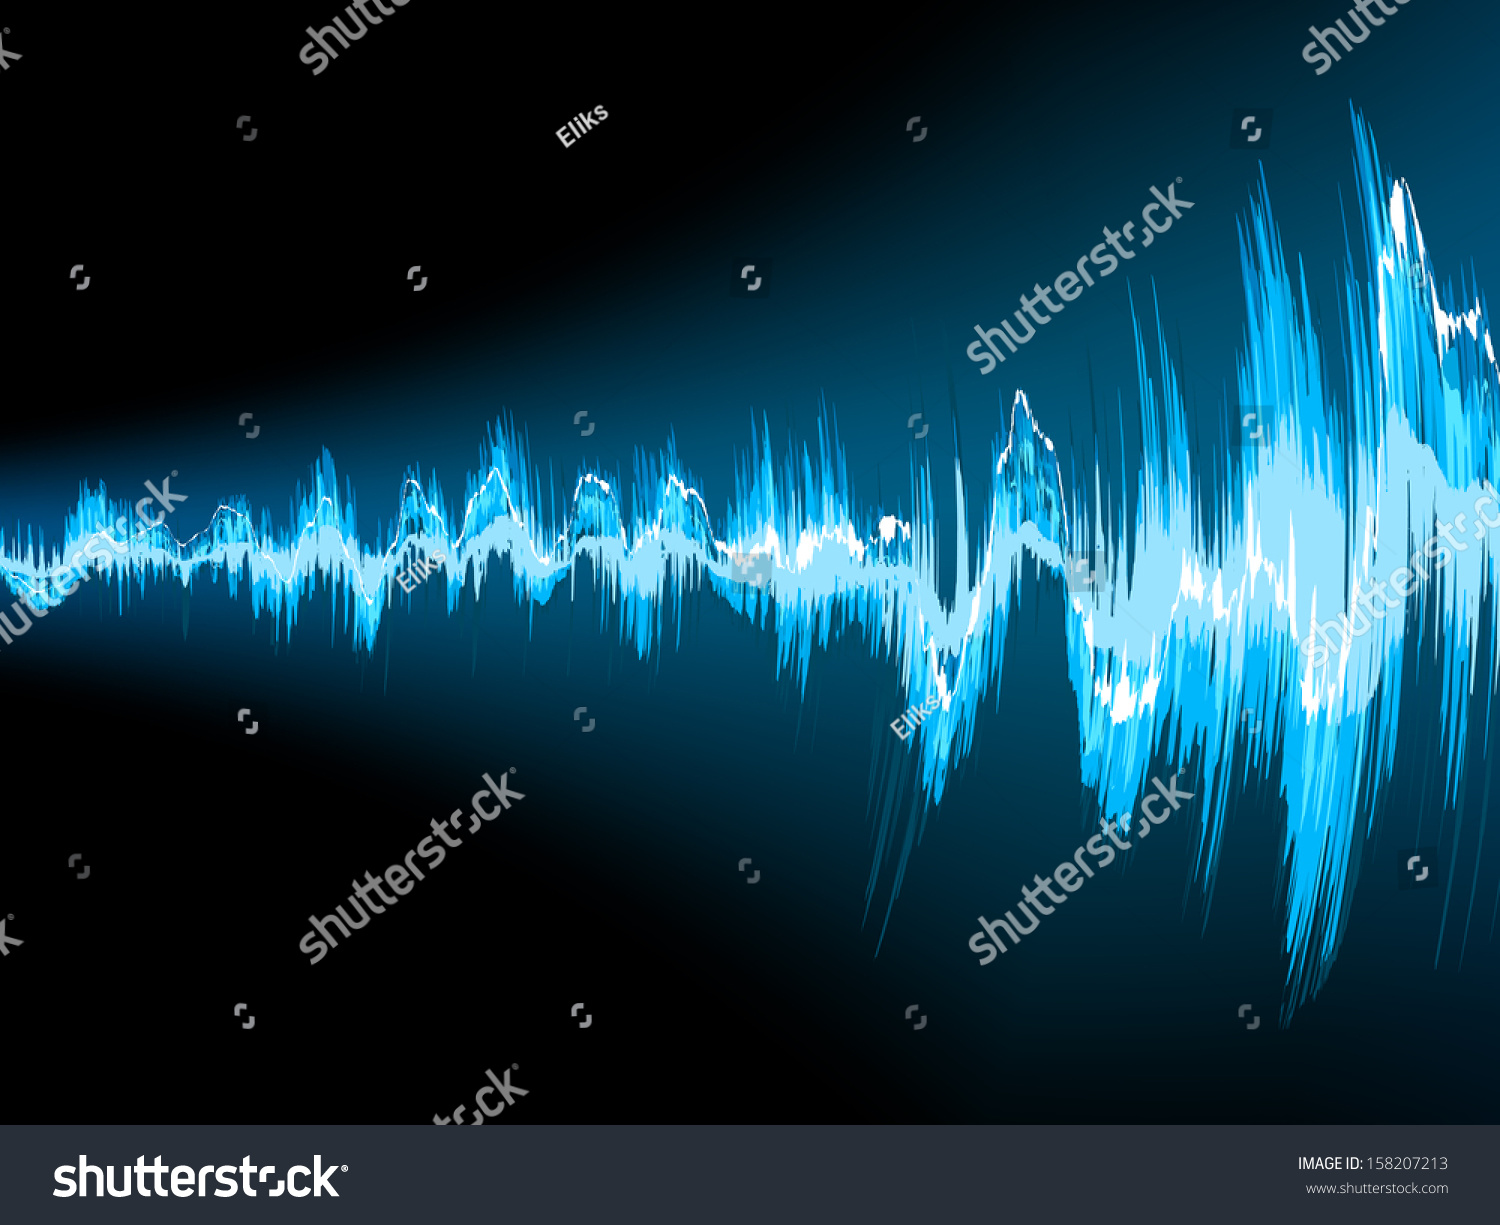 sound of waves essay What is a sound wave a sound wave is produced by a mechanical vibration, such as a tuning fork the vibrating object causes the surrounding medium, such as air, to vibrate as wellthe wave.